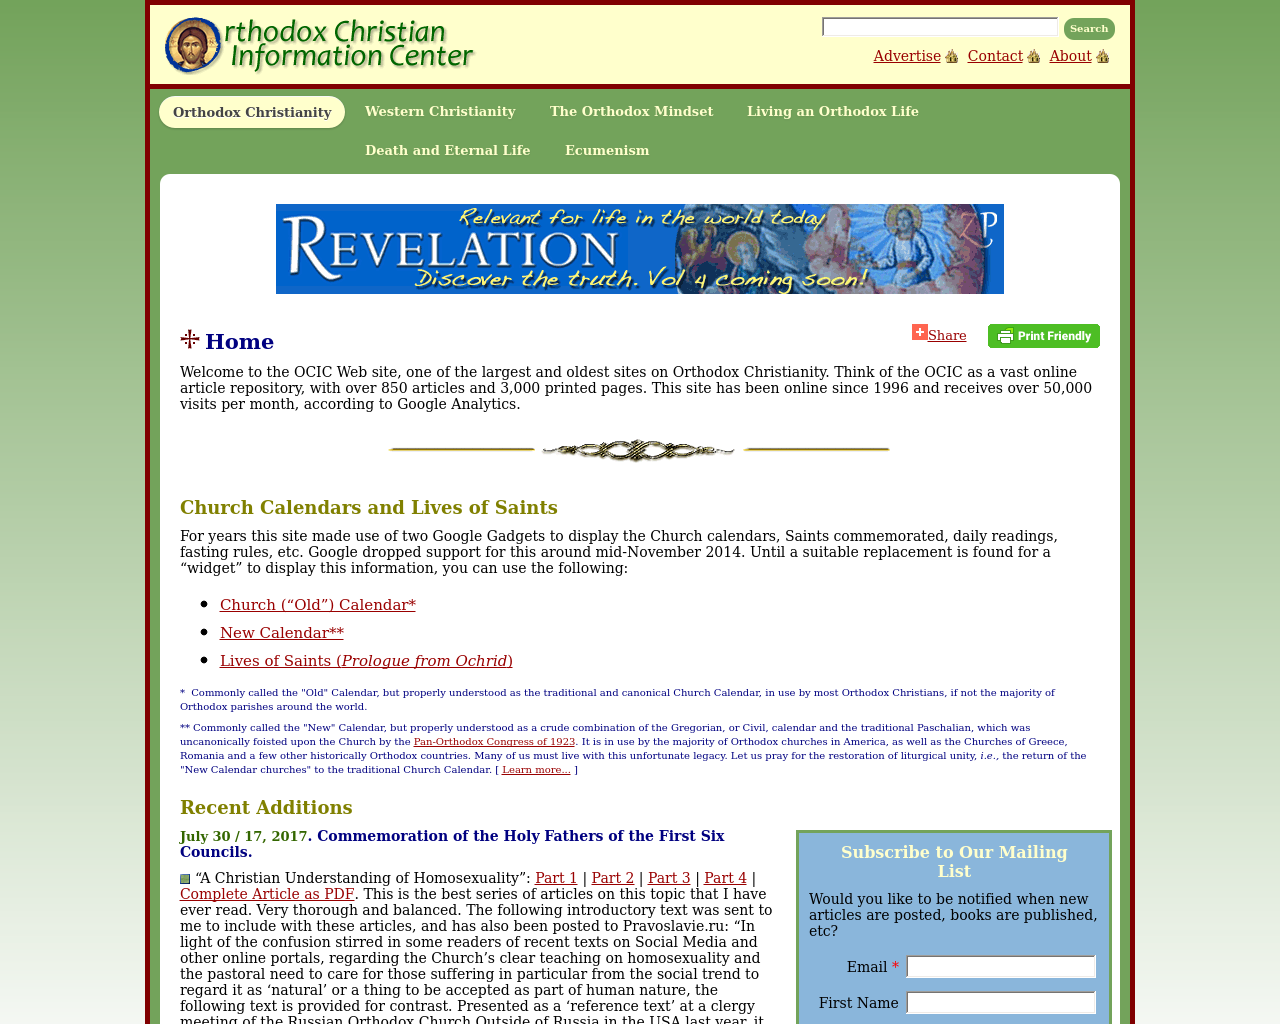 Orthodox-Christian-Information-Center-Advertising-Reviews-Pricing